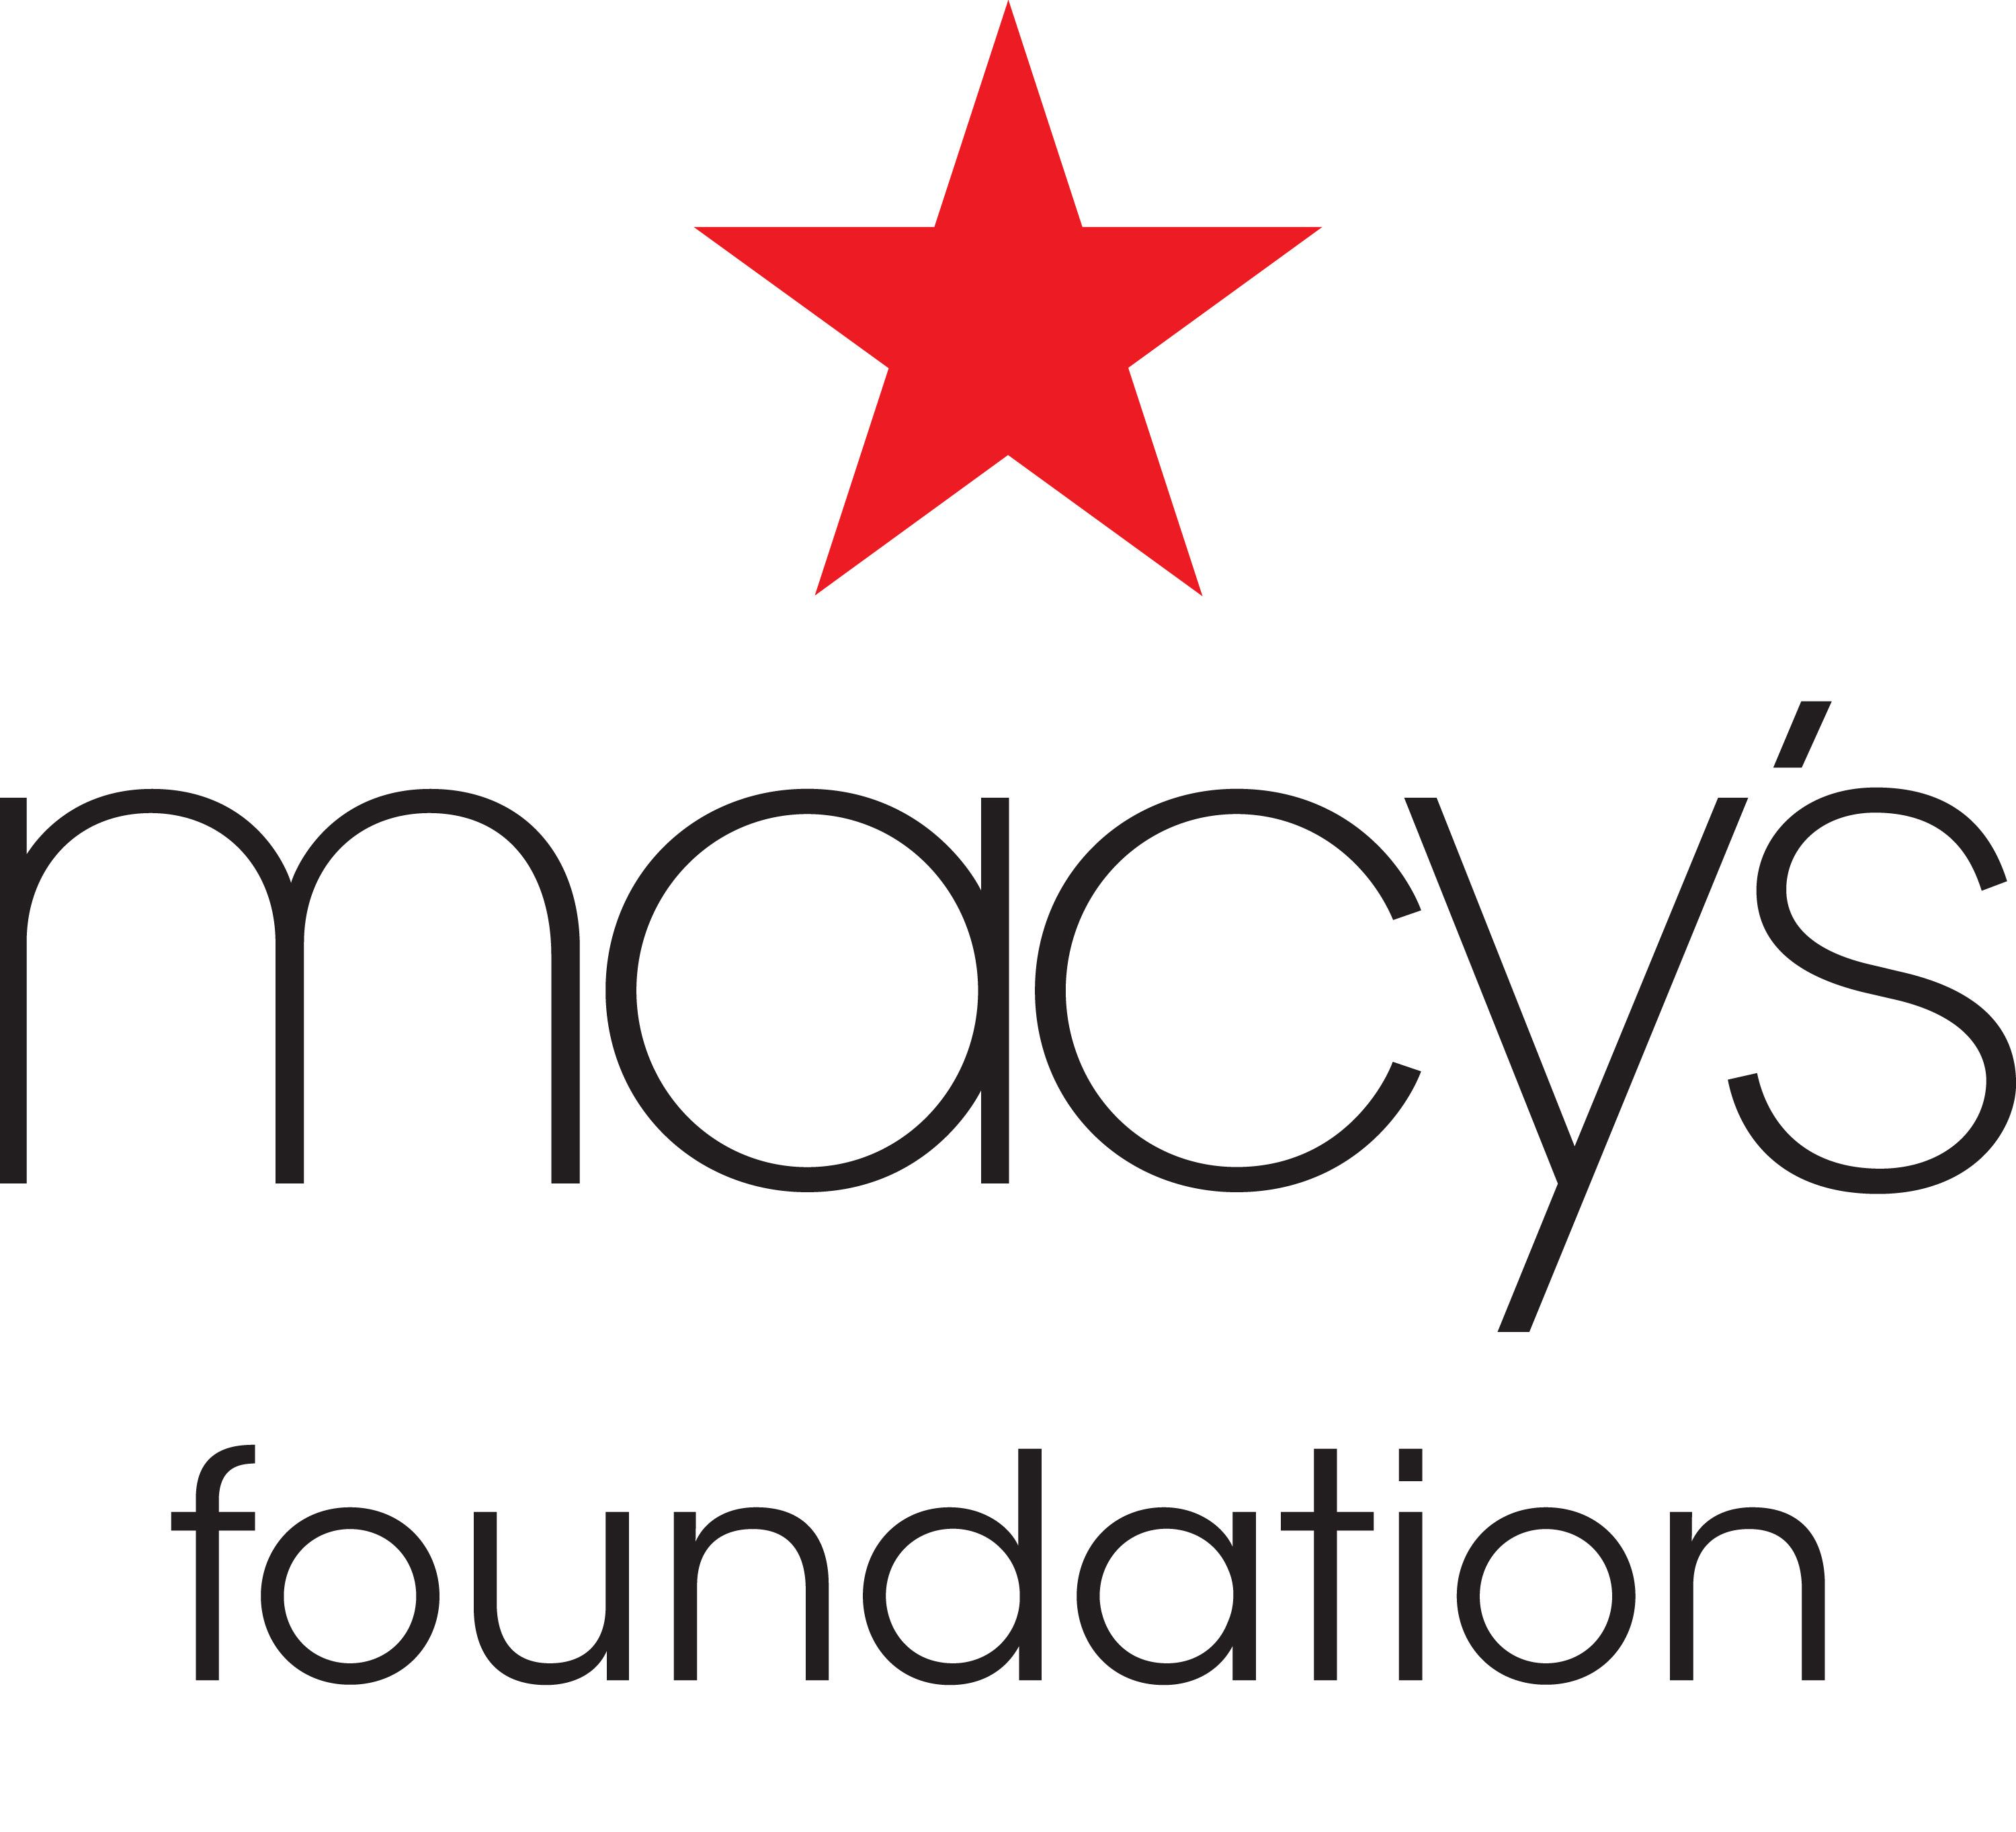 A huge shout out of appreciation to The Macy's Foundation